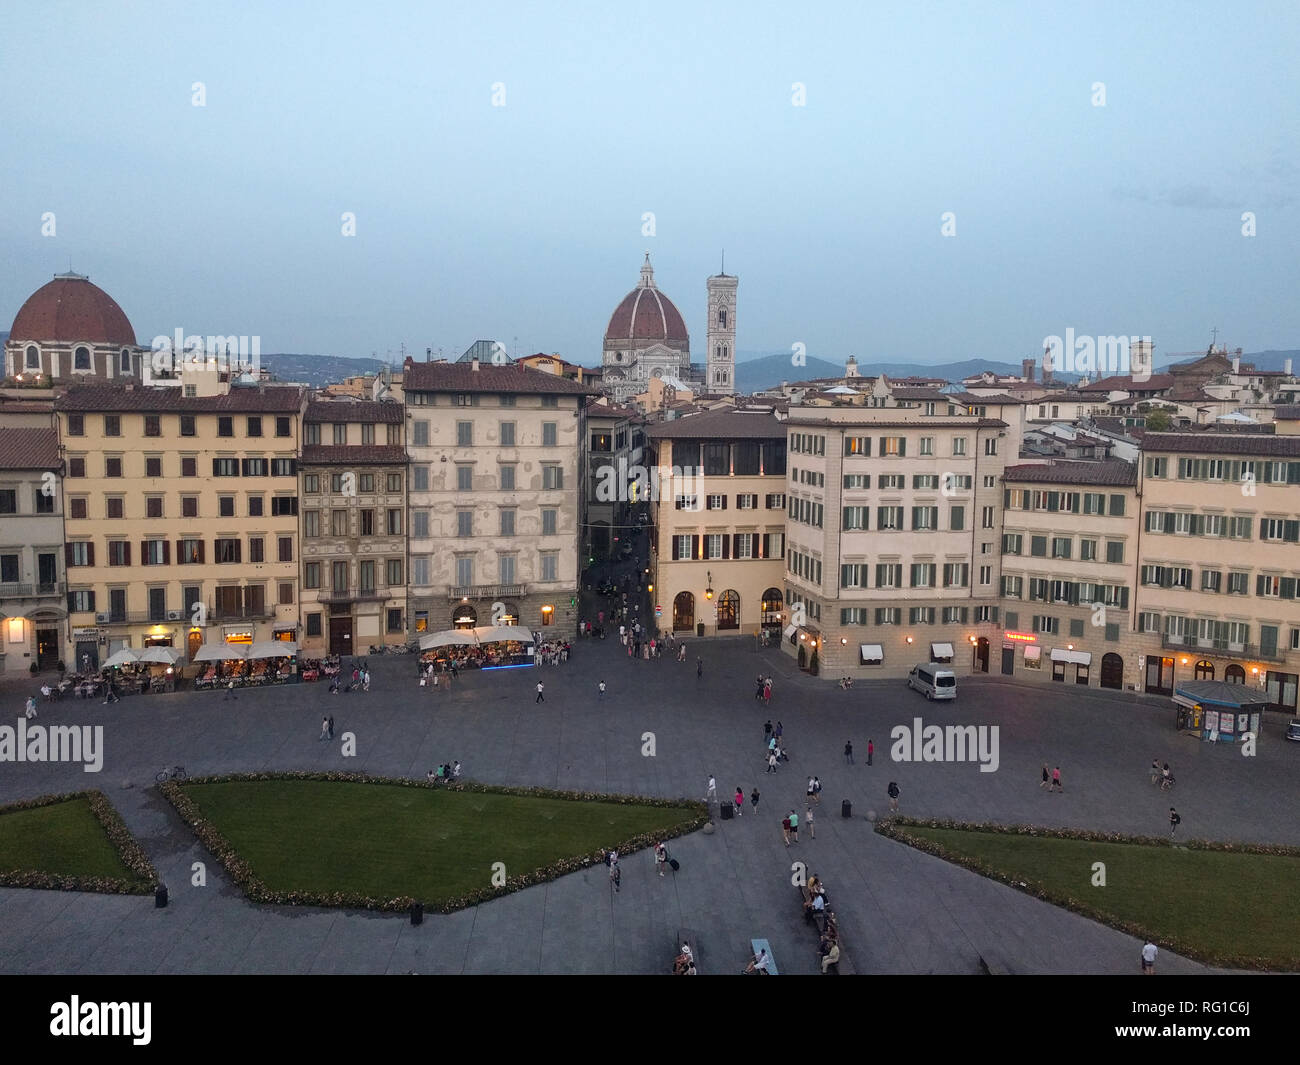 Italy, Florence - July 21 2017: arial view of piazza di Santa Maria Novella in Florence on July 21 2017, Tuscany, Italy. - Stock Image